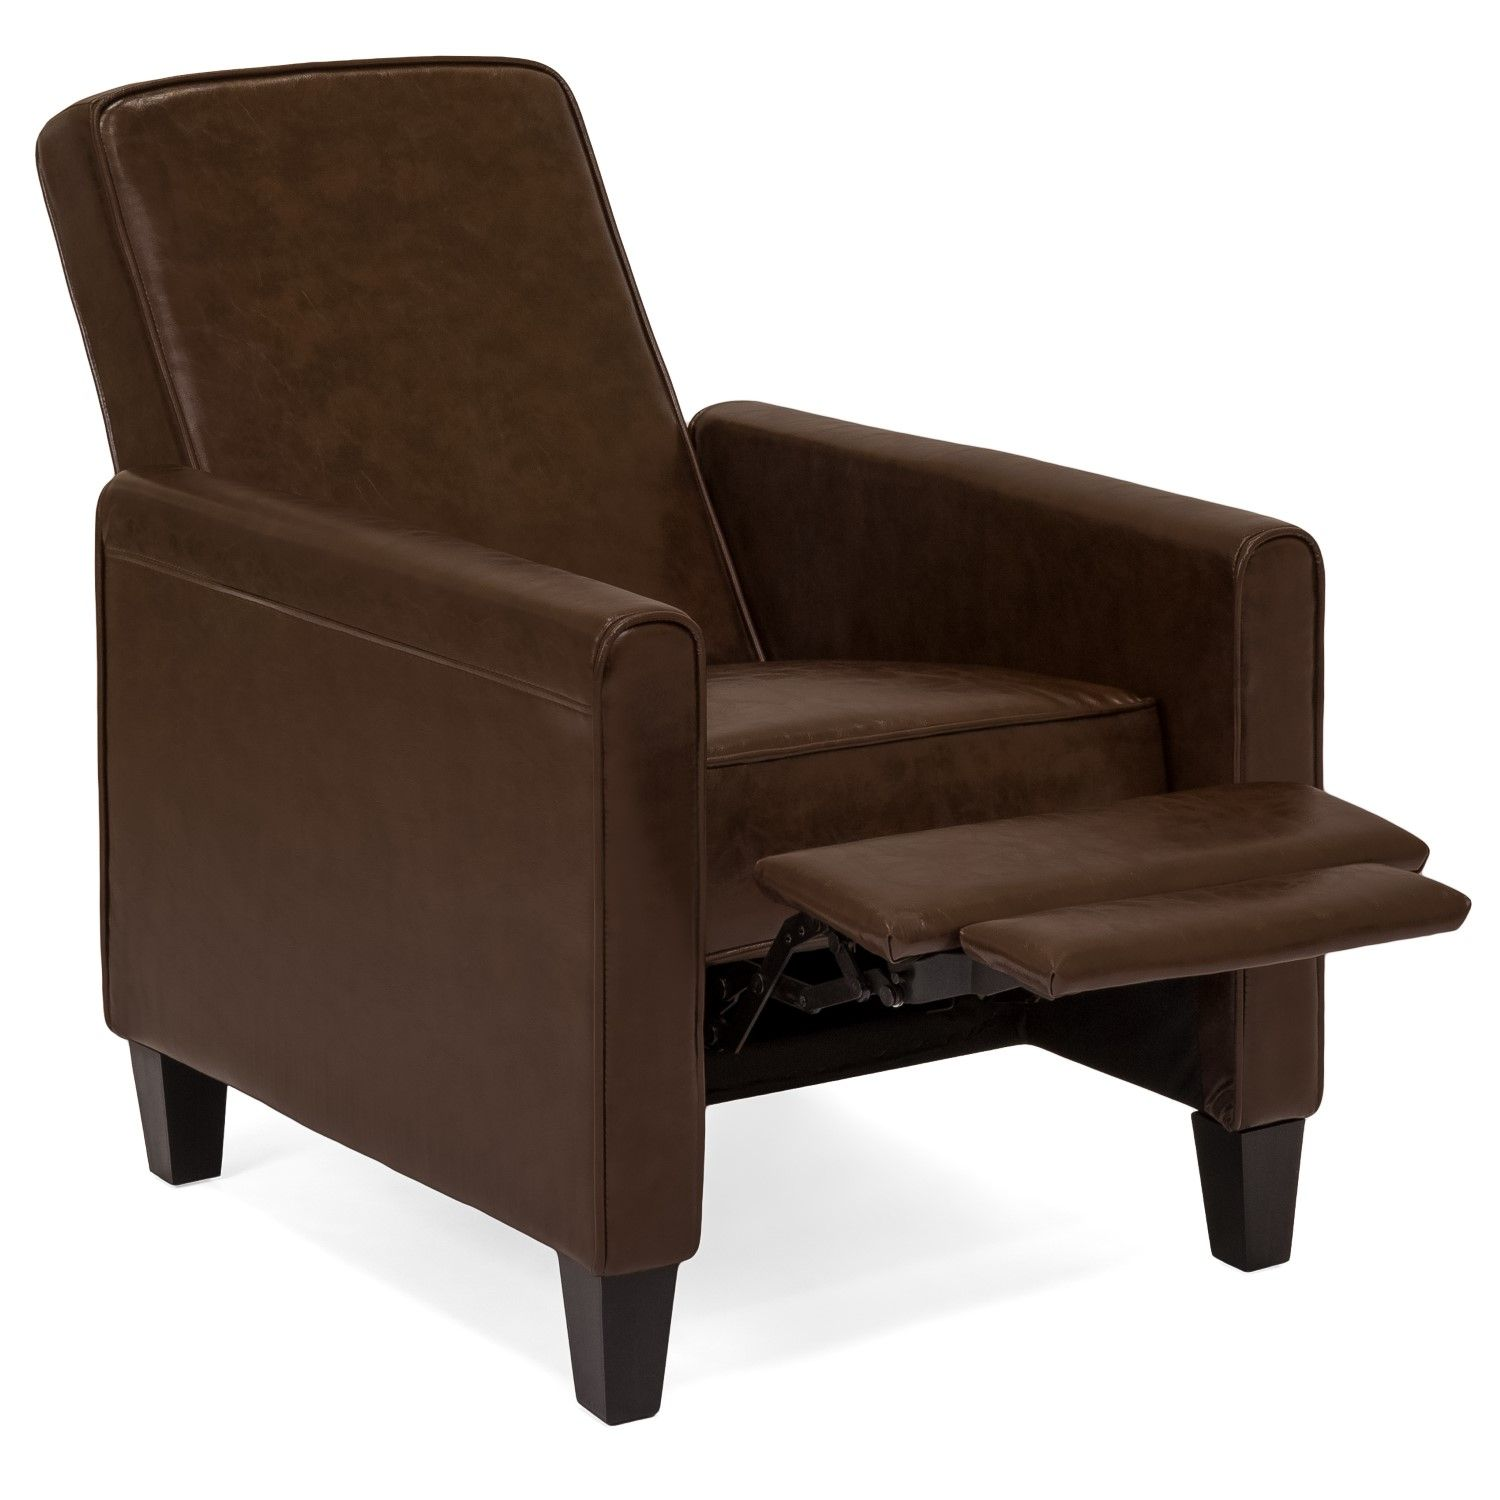 Best Choice Products Modern Sleek Upholstered Faux Leather